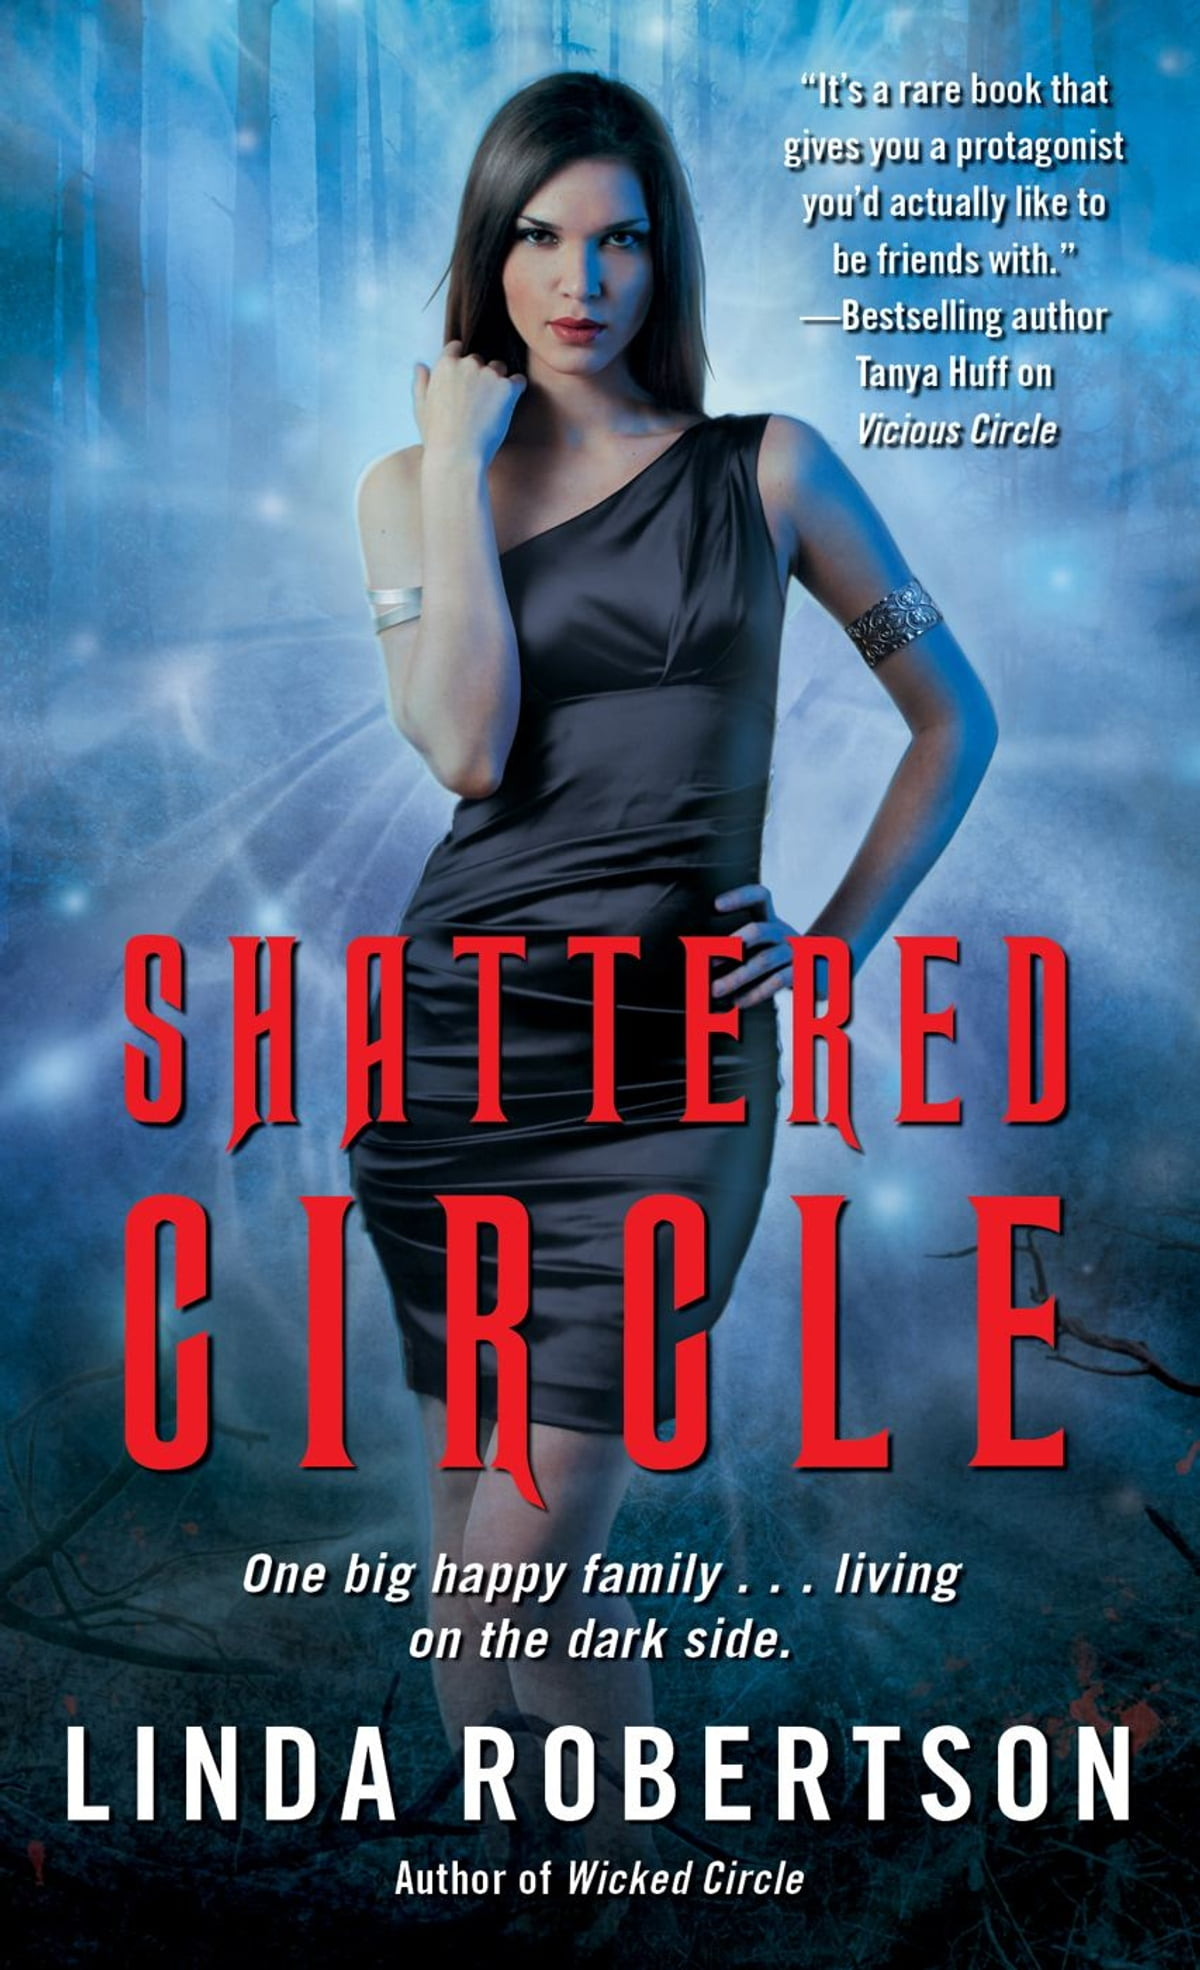 Shattered circle ebook by linda robertson 9781451648928 shattered circle ebook by linda robertson 9781451648928 rakuten kobo fandeluxe Document